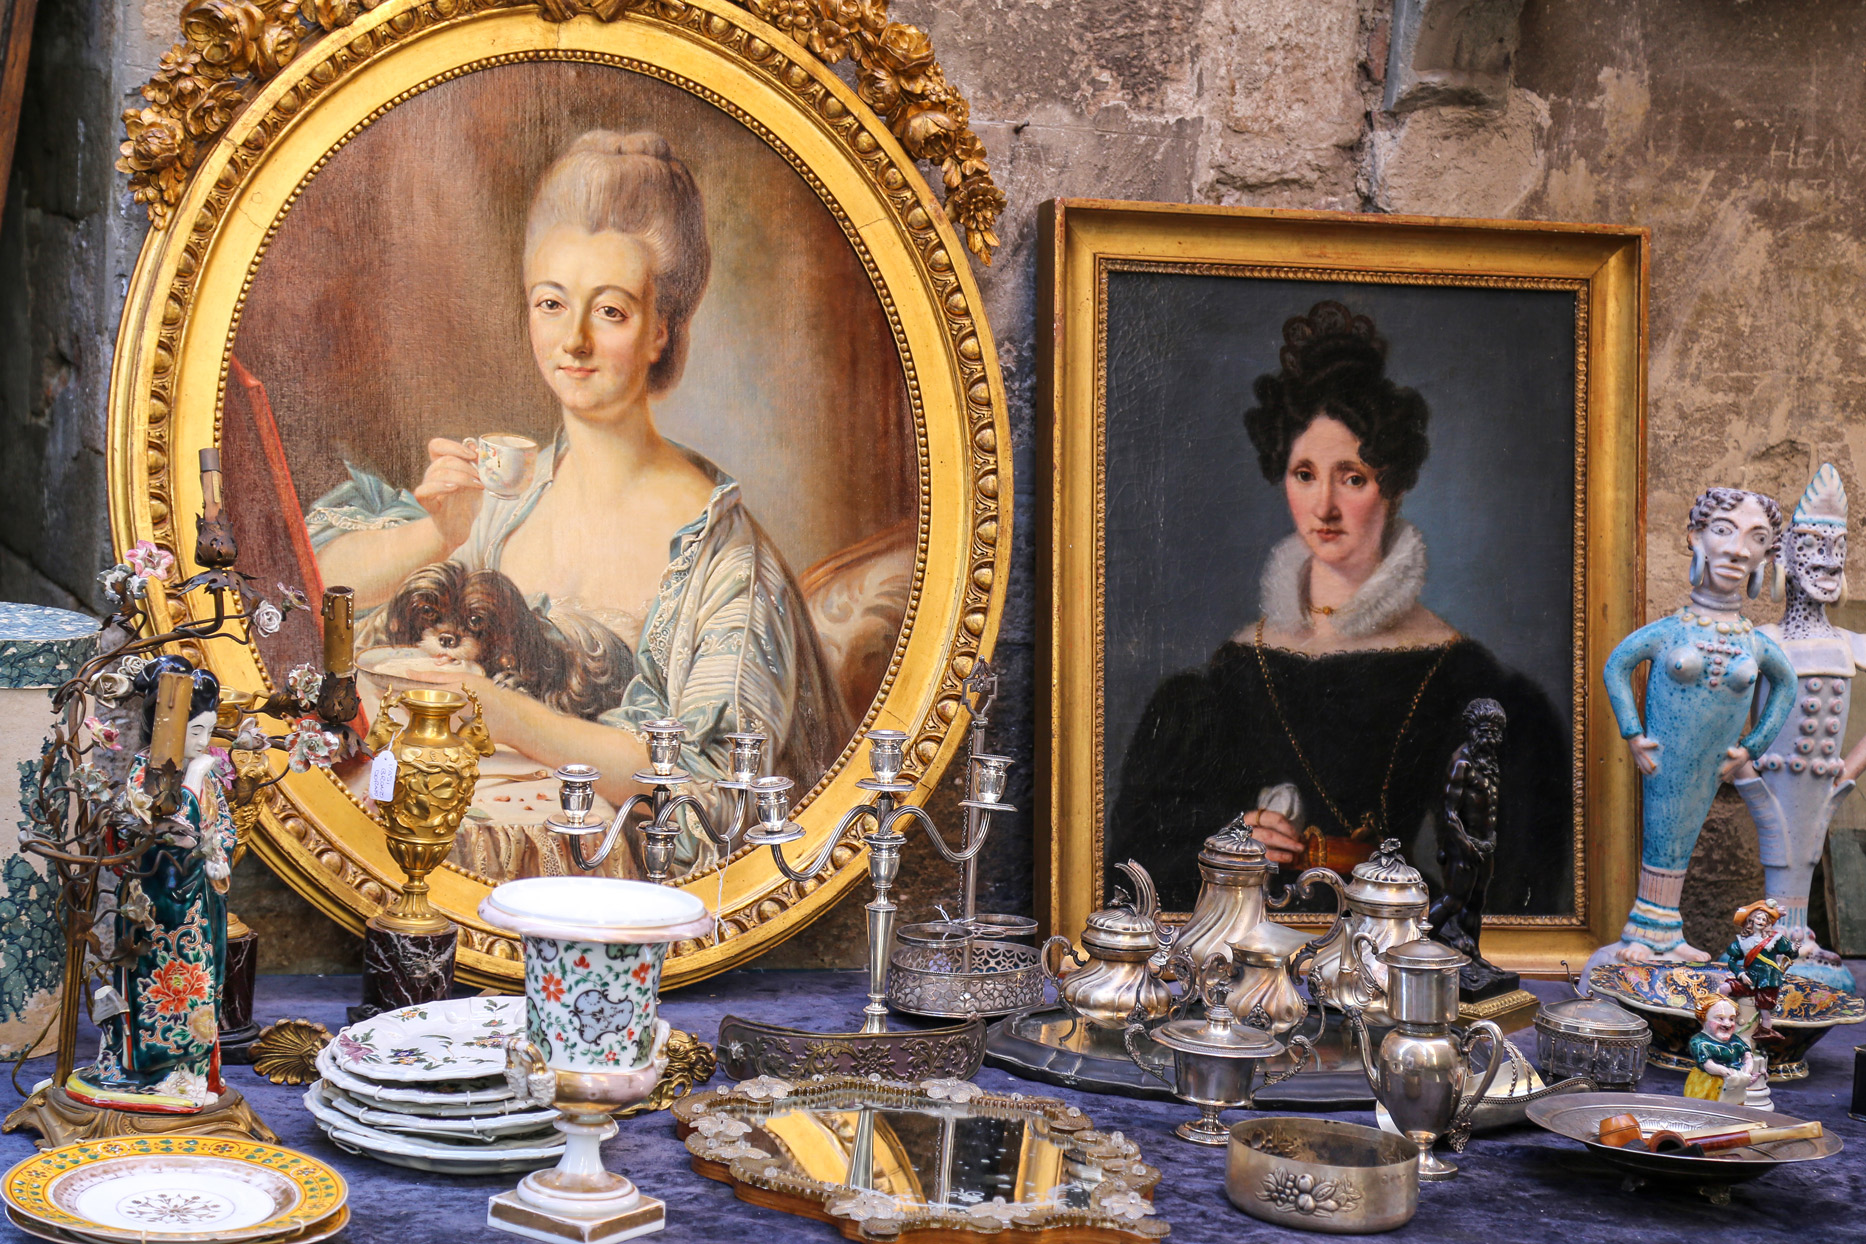 tabletop with antique paintings and serveware